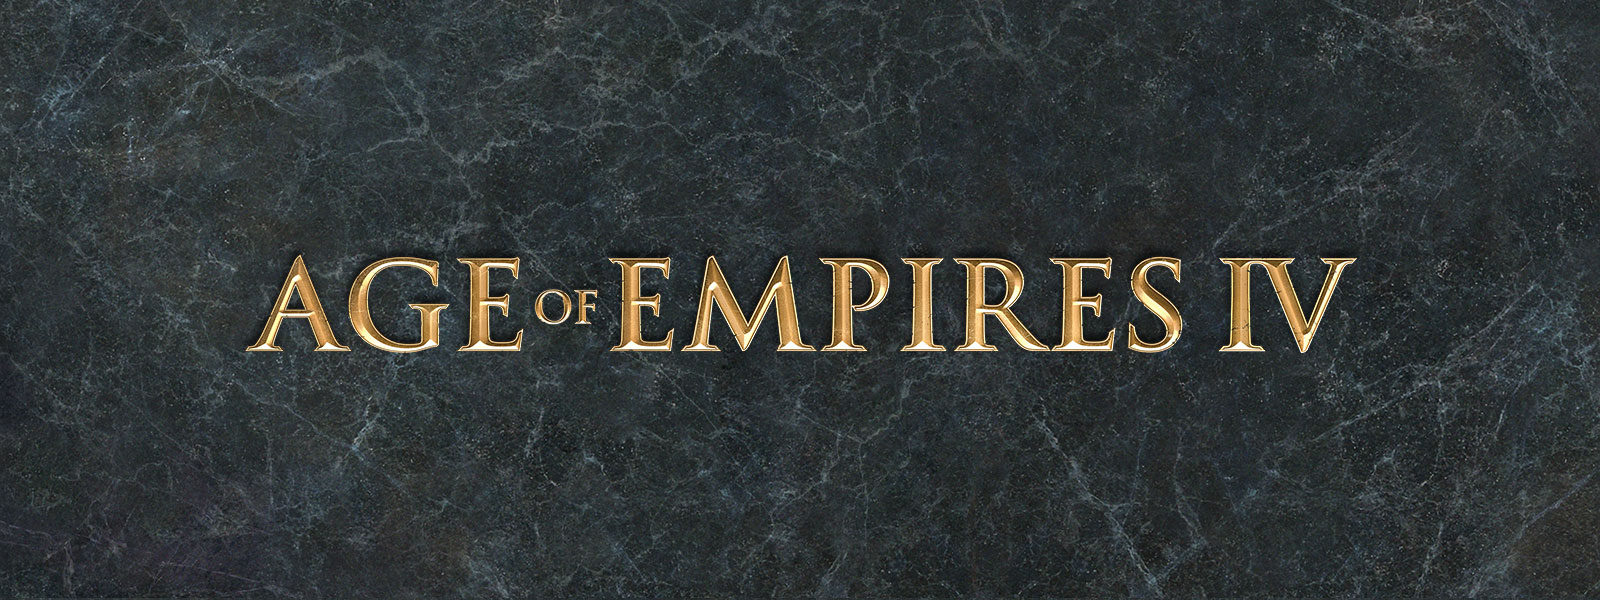 Age of Empires IV logo on a grey slate background